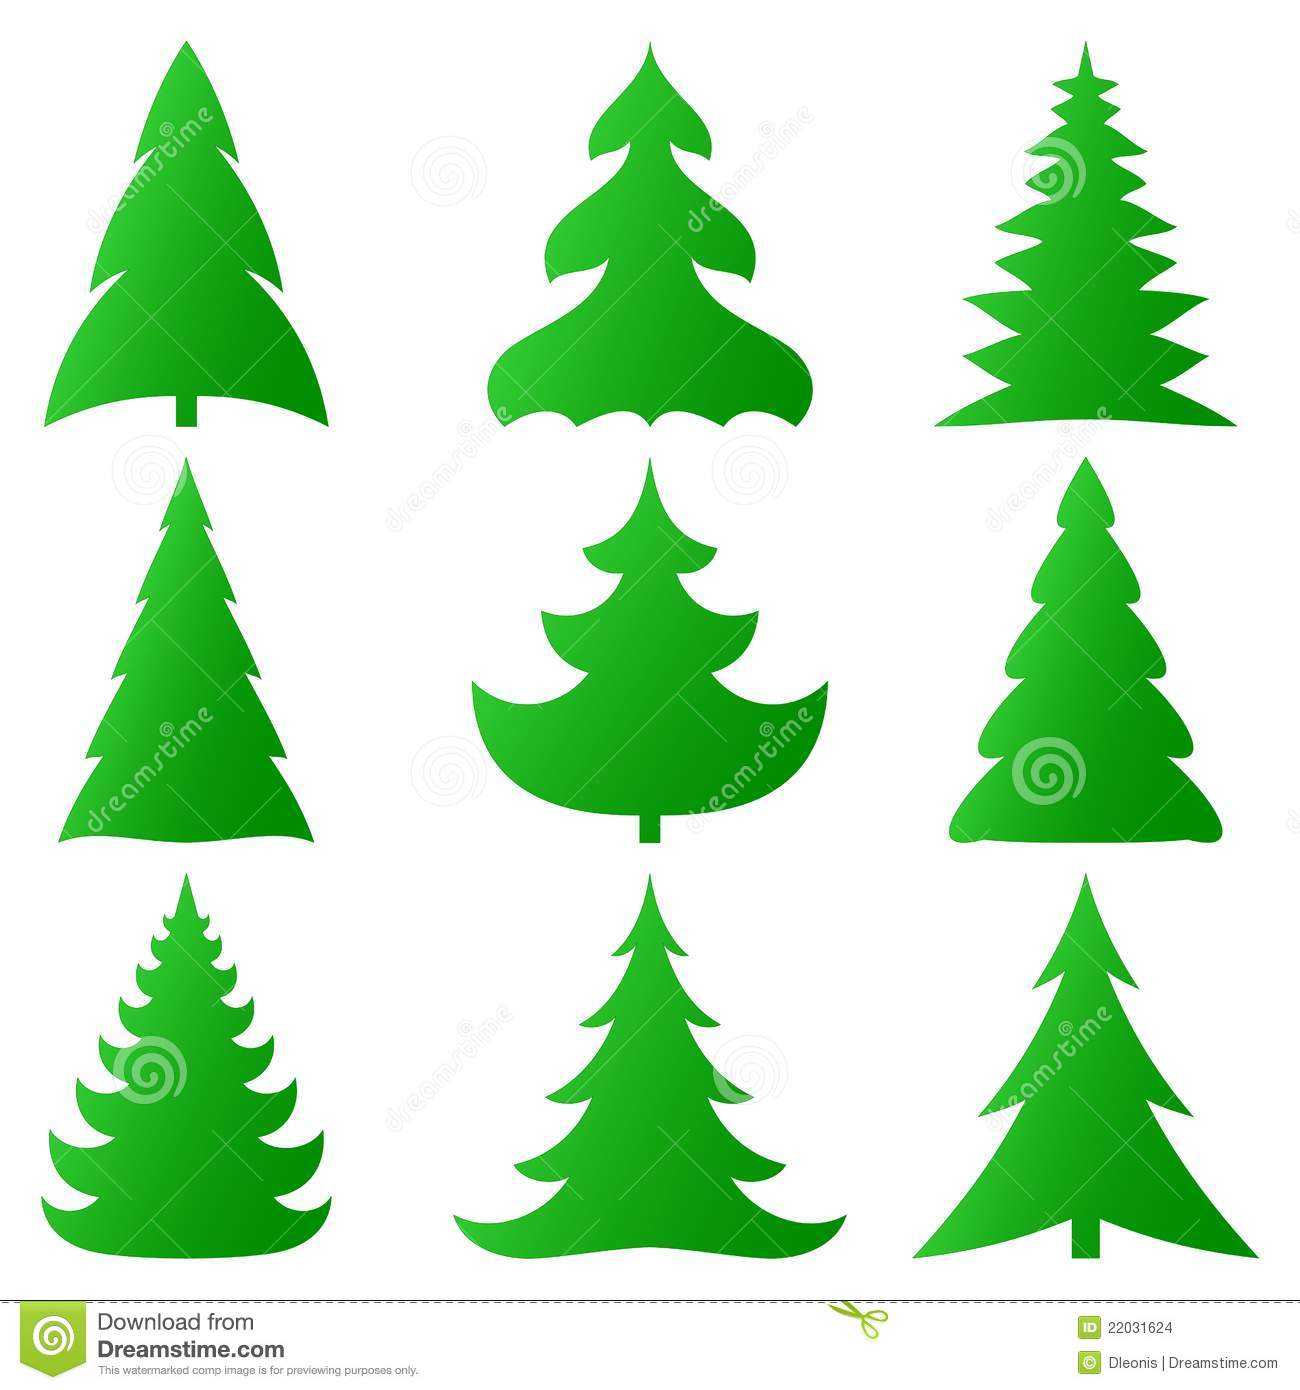 Christmas Tree Collection Leichhardt : Christmas trees collection stock images image